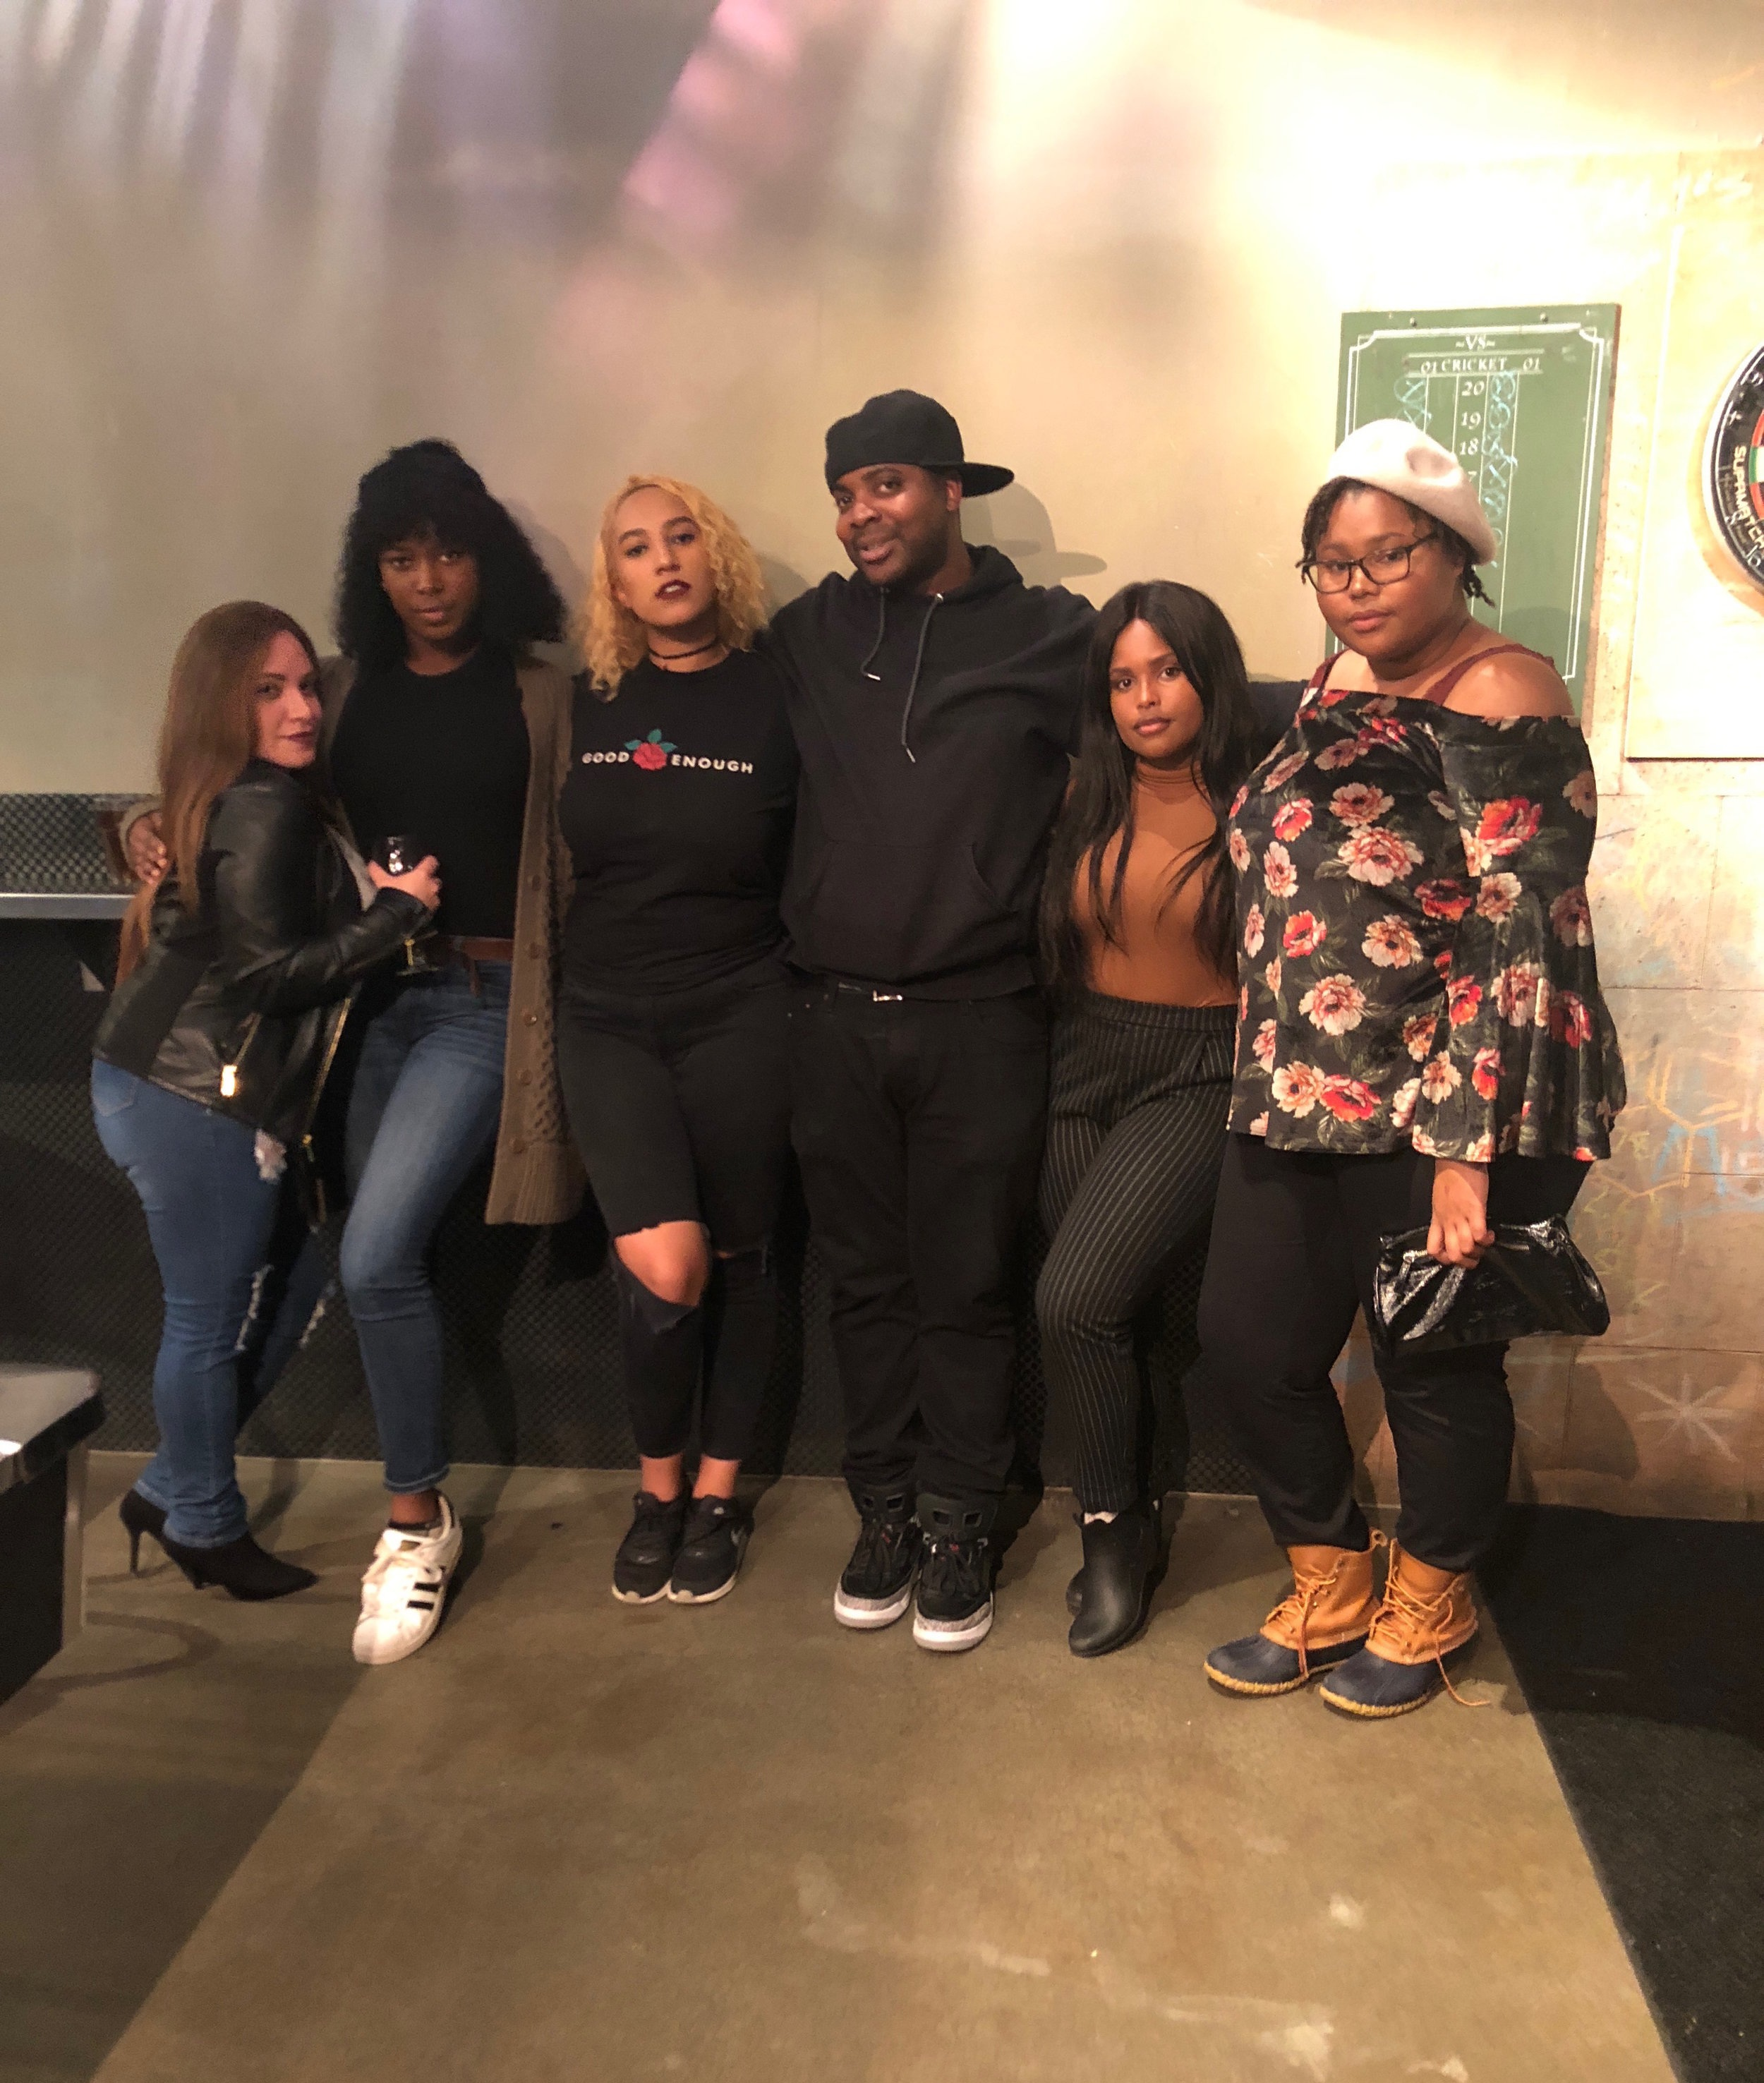 The performers from the fall 2018 Comedy in Color show. From left to right: Shari Diaz, Kevyn Robinson, Noni Shemenski, Matt White, Tyla Gomez and Victoria Quiett